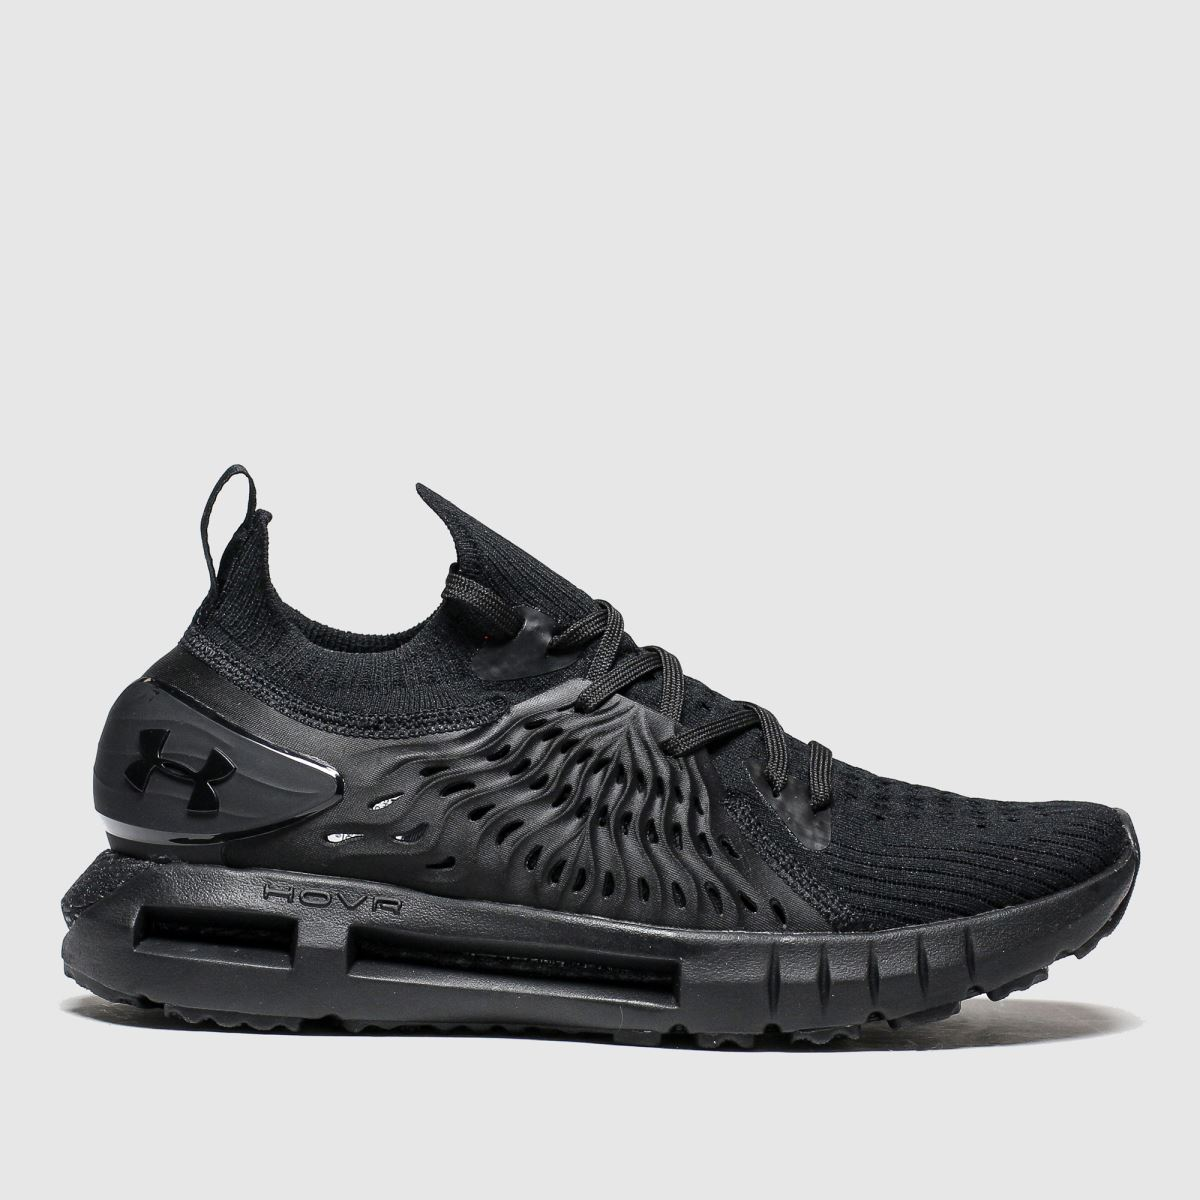 Under Armour Black Phantom Rn Trainers